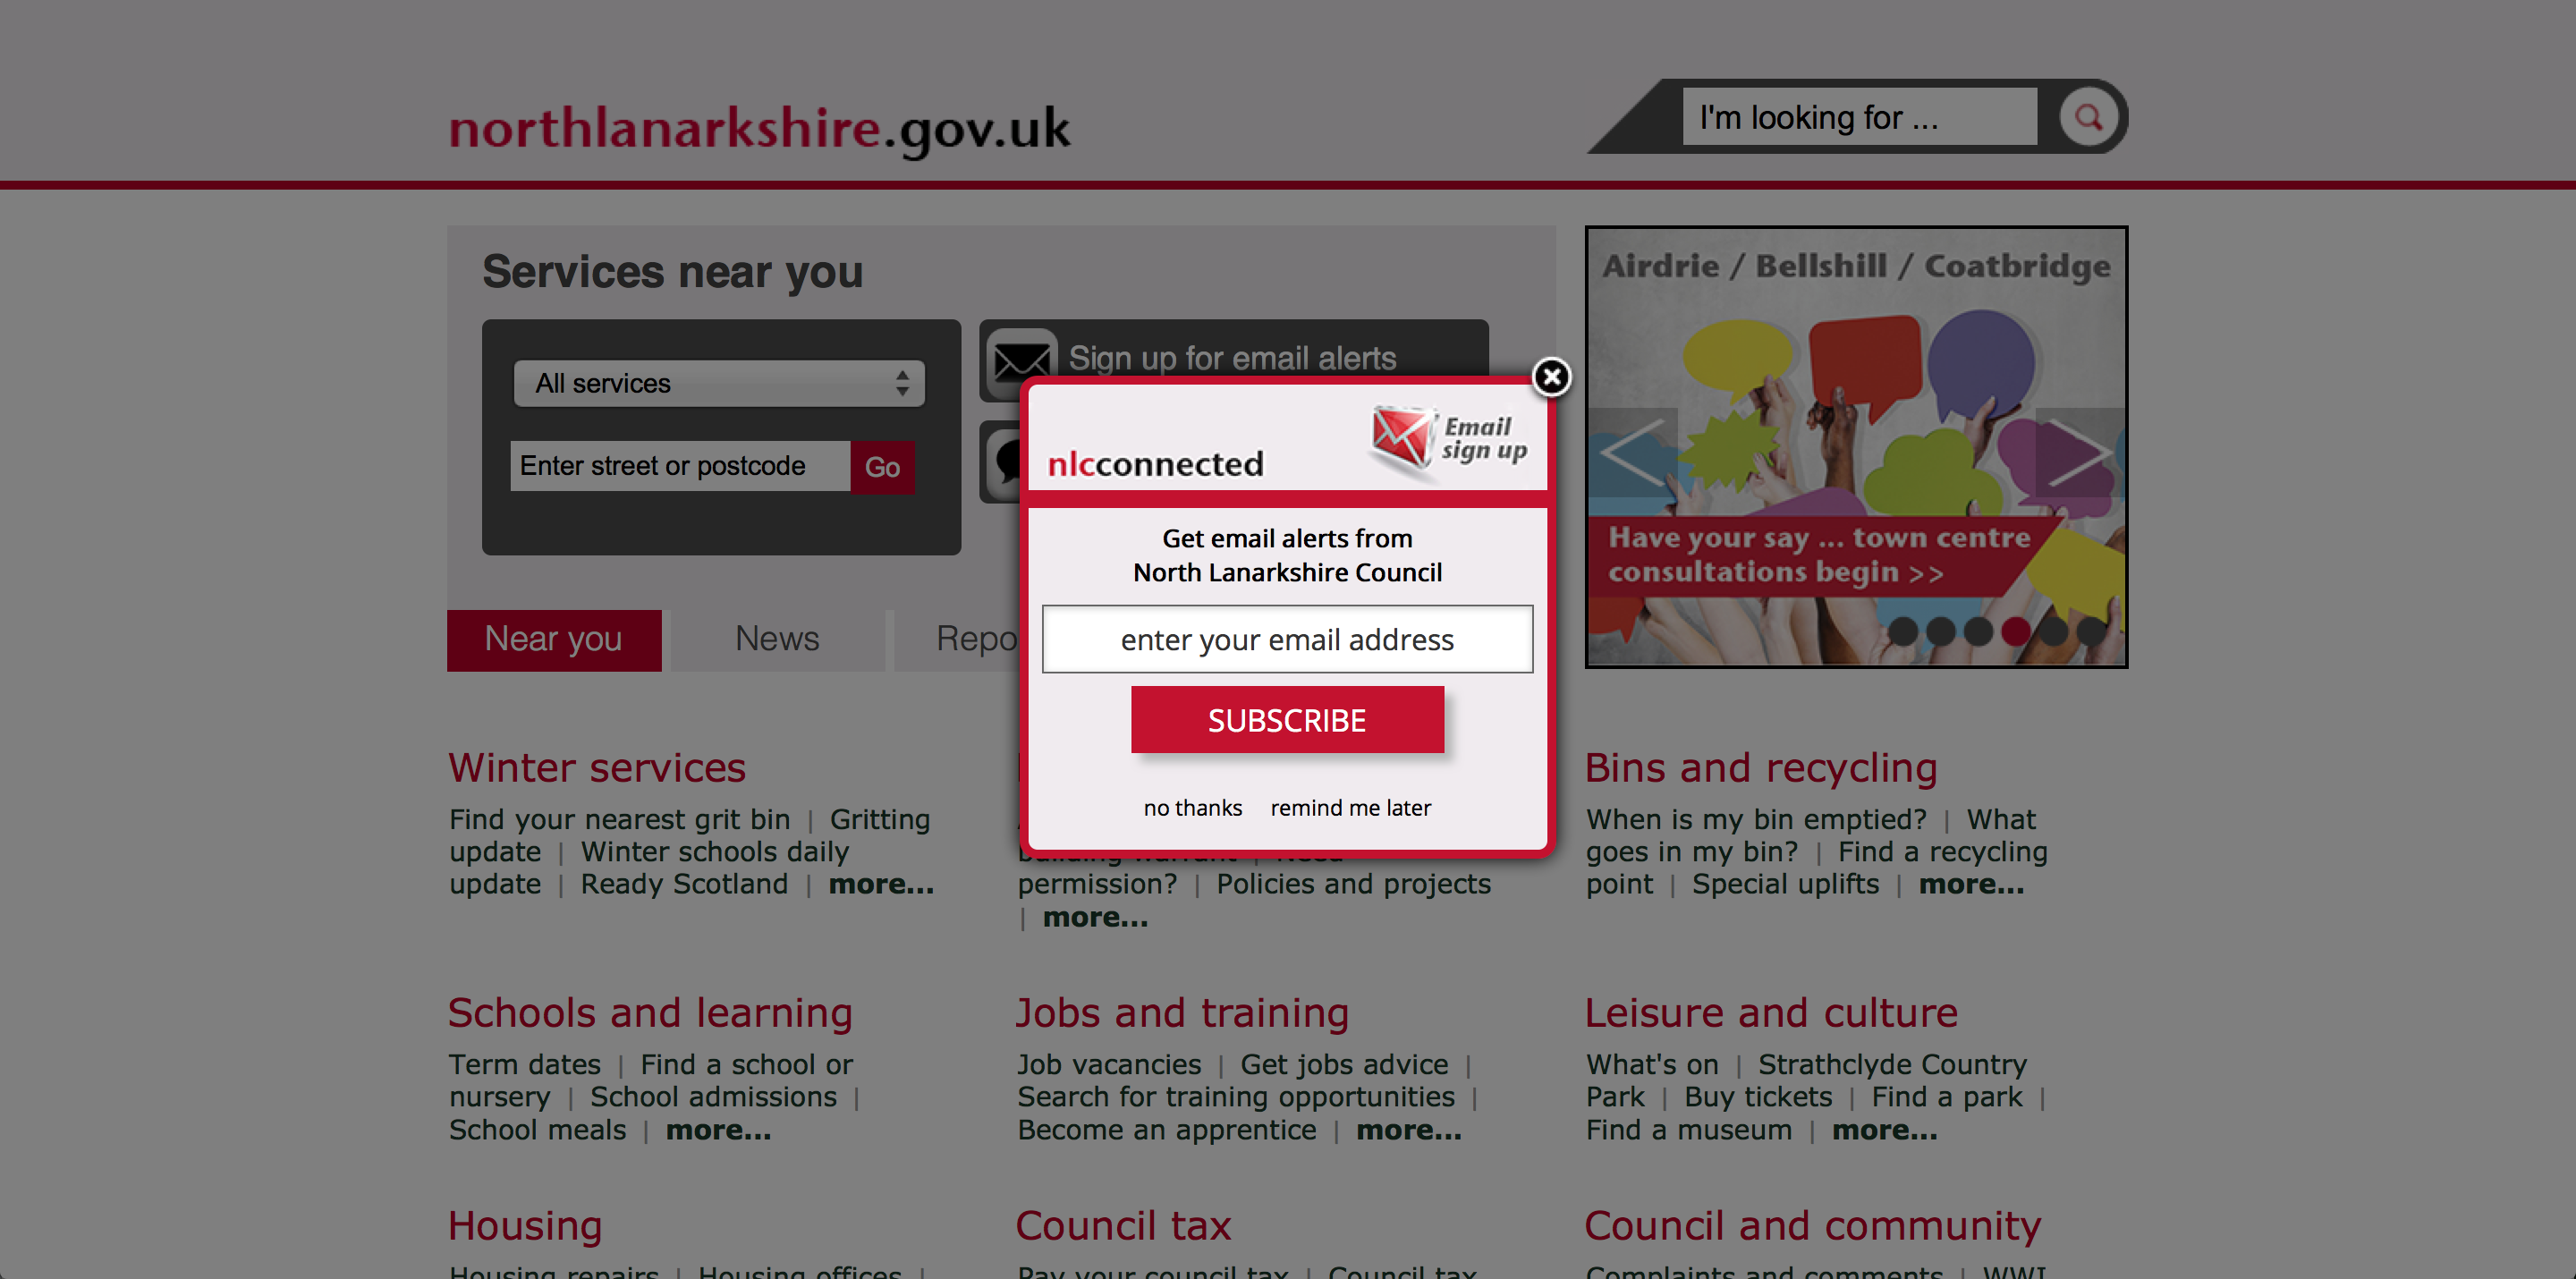 North Lanarkshire Council In The Uk Uses A Website Overlay To Engage Citizens In Their Communications By Capturing The Email Council Bellshill Finding Yourself